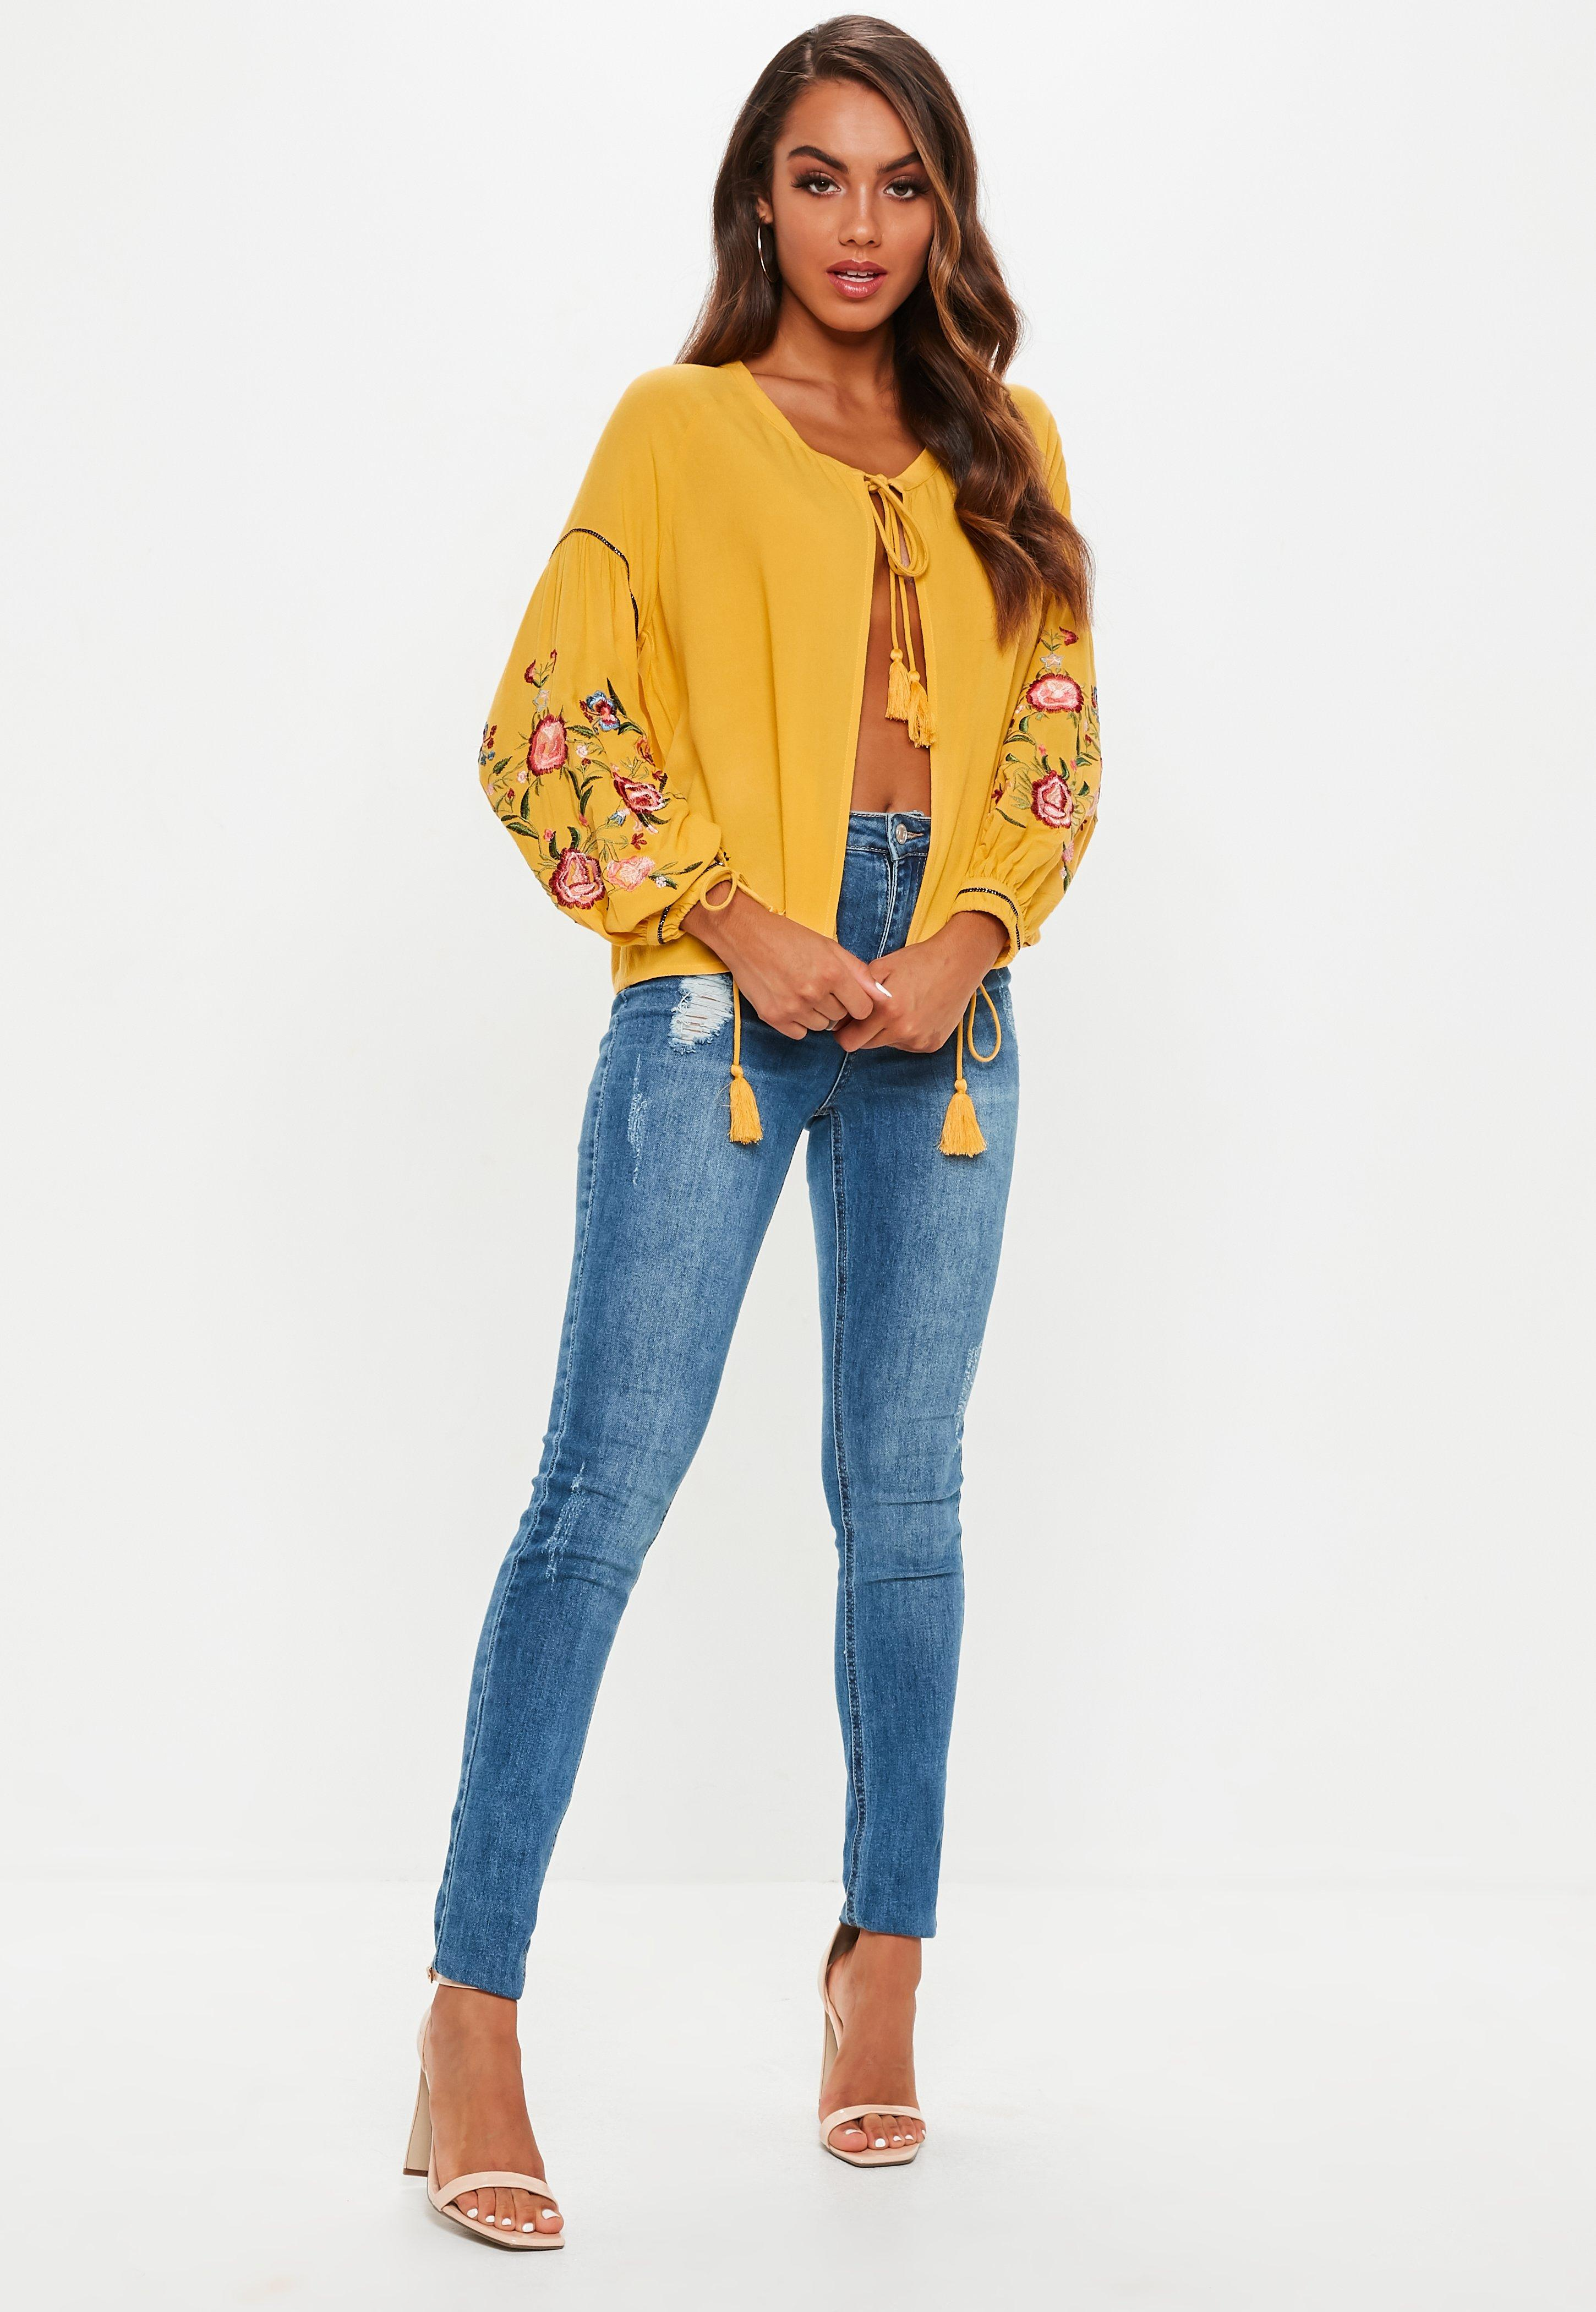 8b5583d6a26399 Lyst - Missguided Mustard Yellow Floral Embroidered Sleeve Tie Front ...